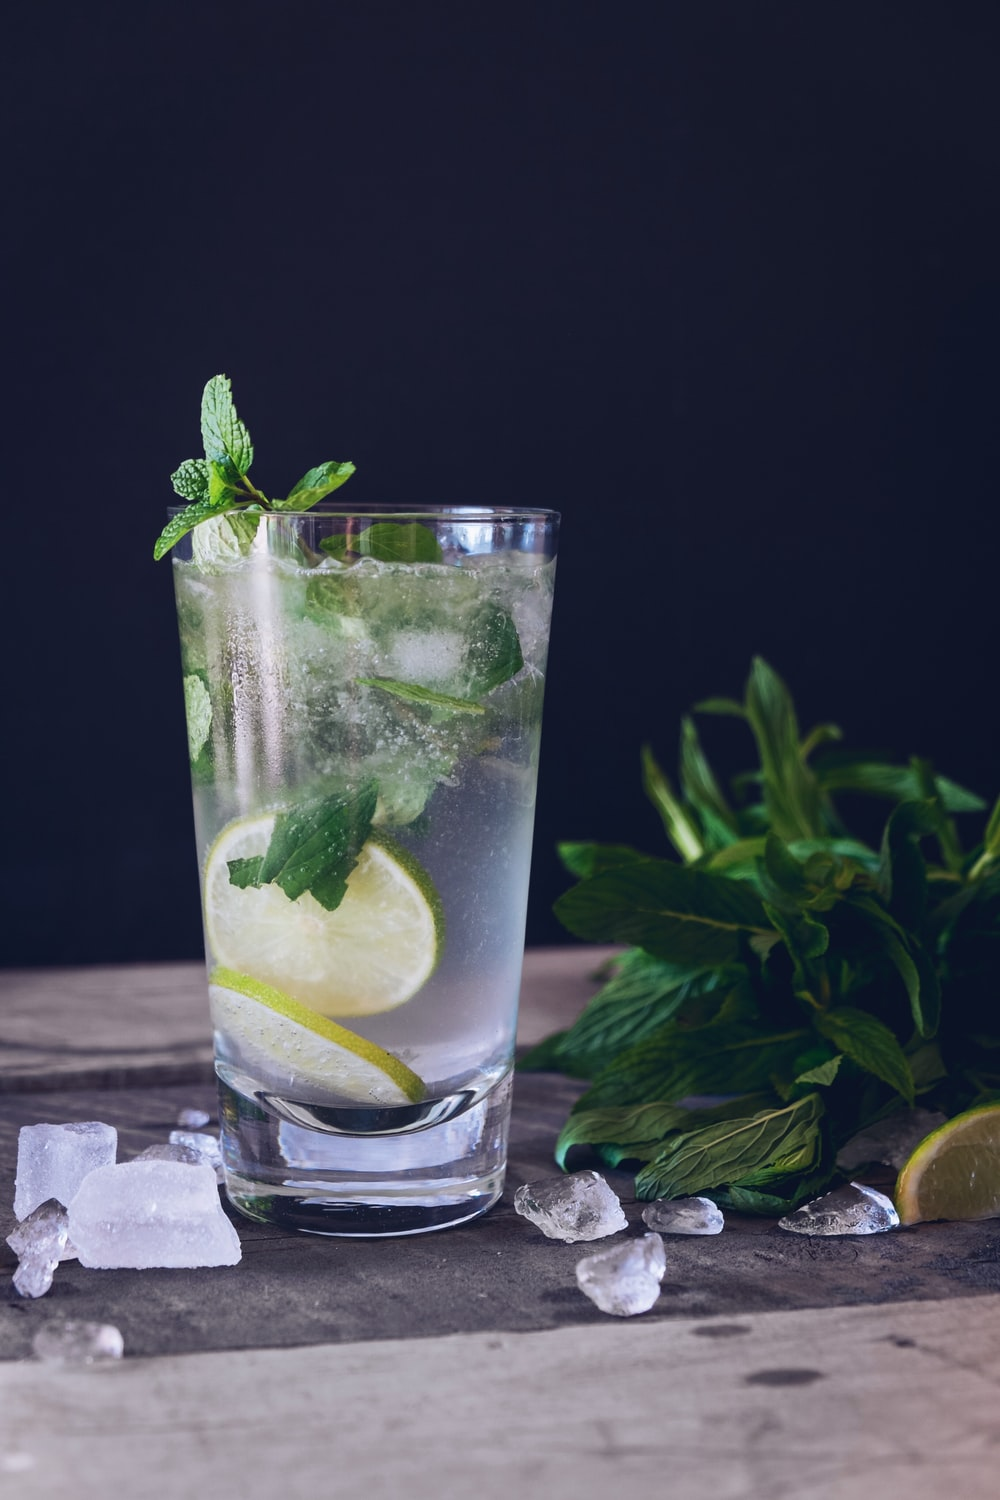 clear glass cup filled with water and lemon